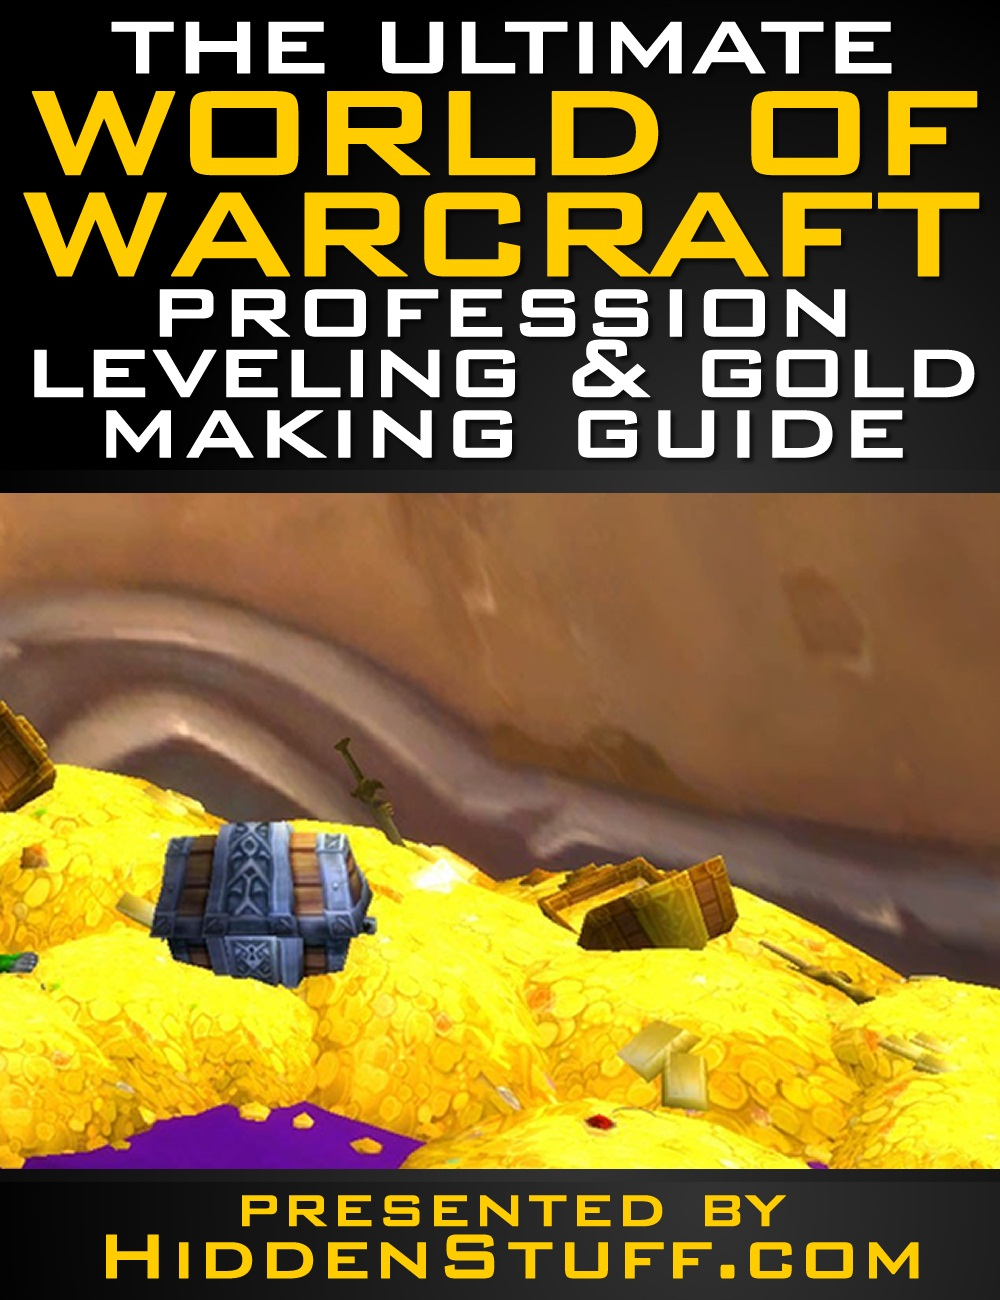 The Ultimate World of Warcraft Profession Leveling & Gold Making Guide By: Josh Abbott